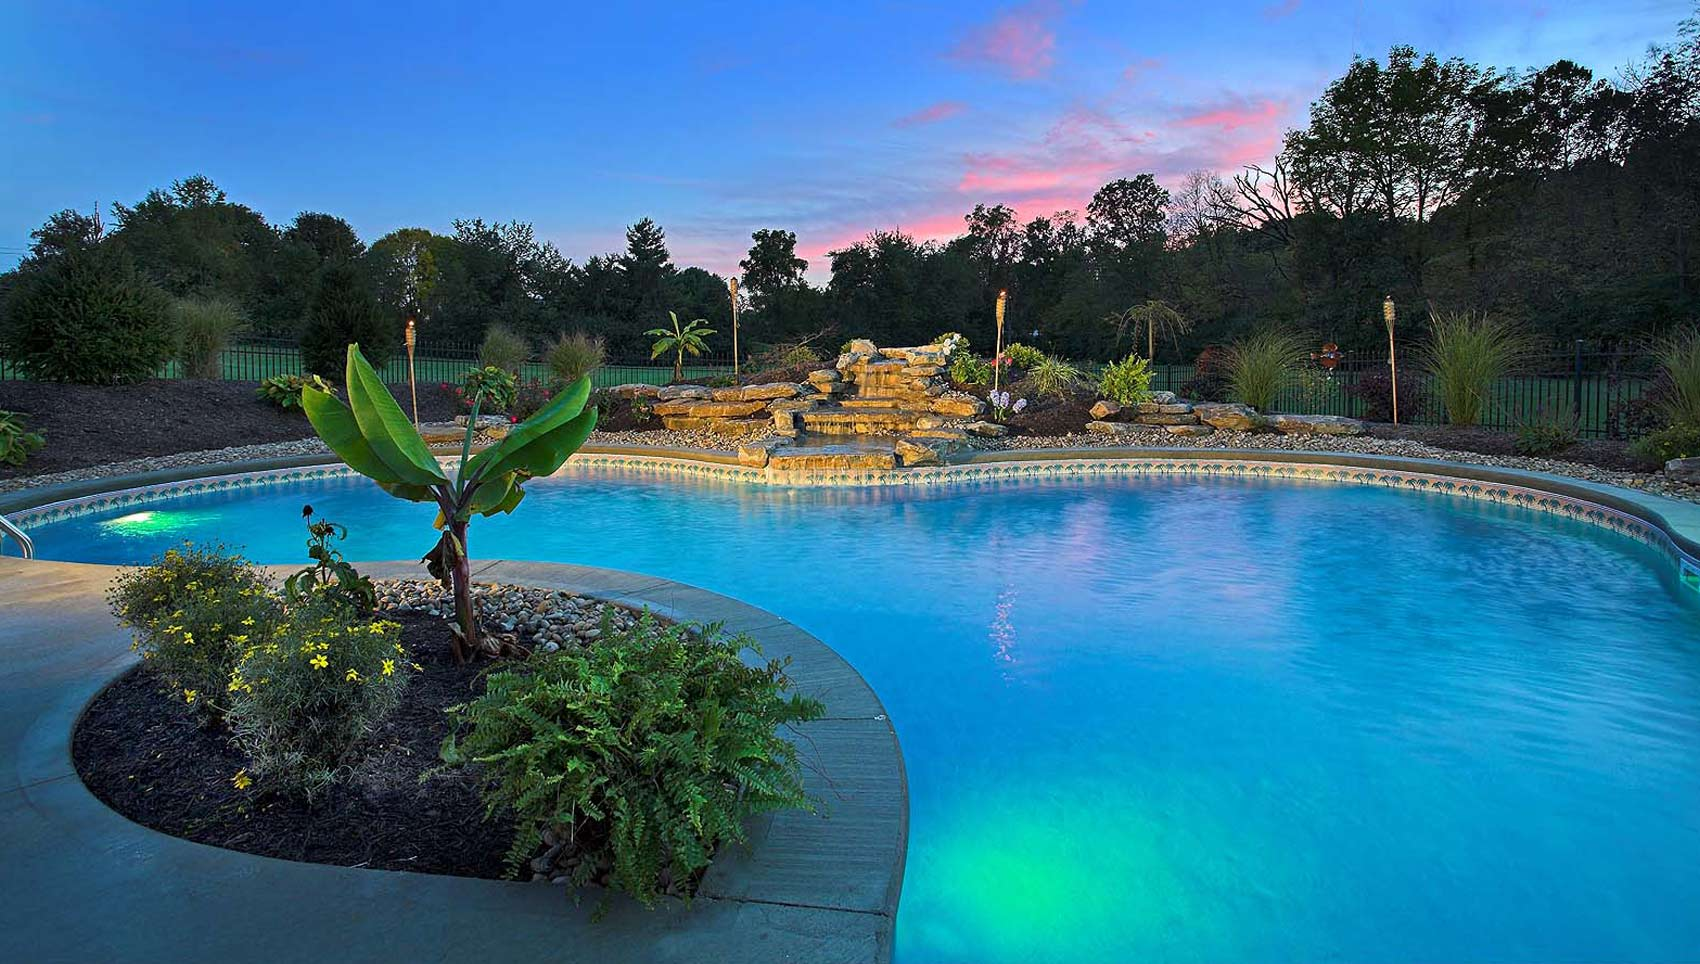 Inground pools by siloam pools are affordable durable - Inexpensive inground swimming pools ...